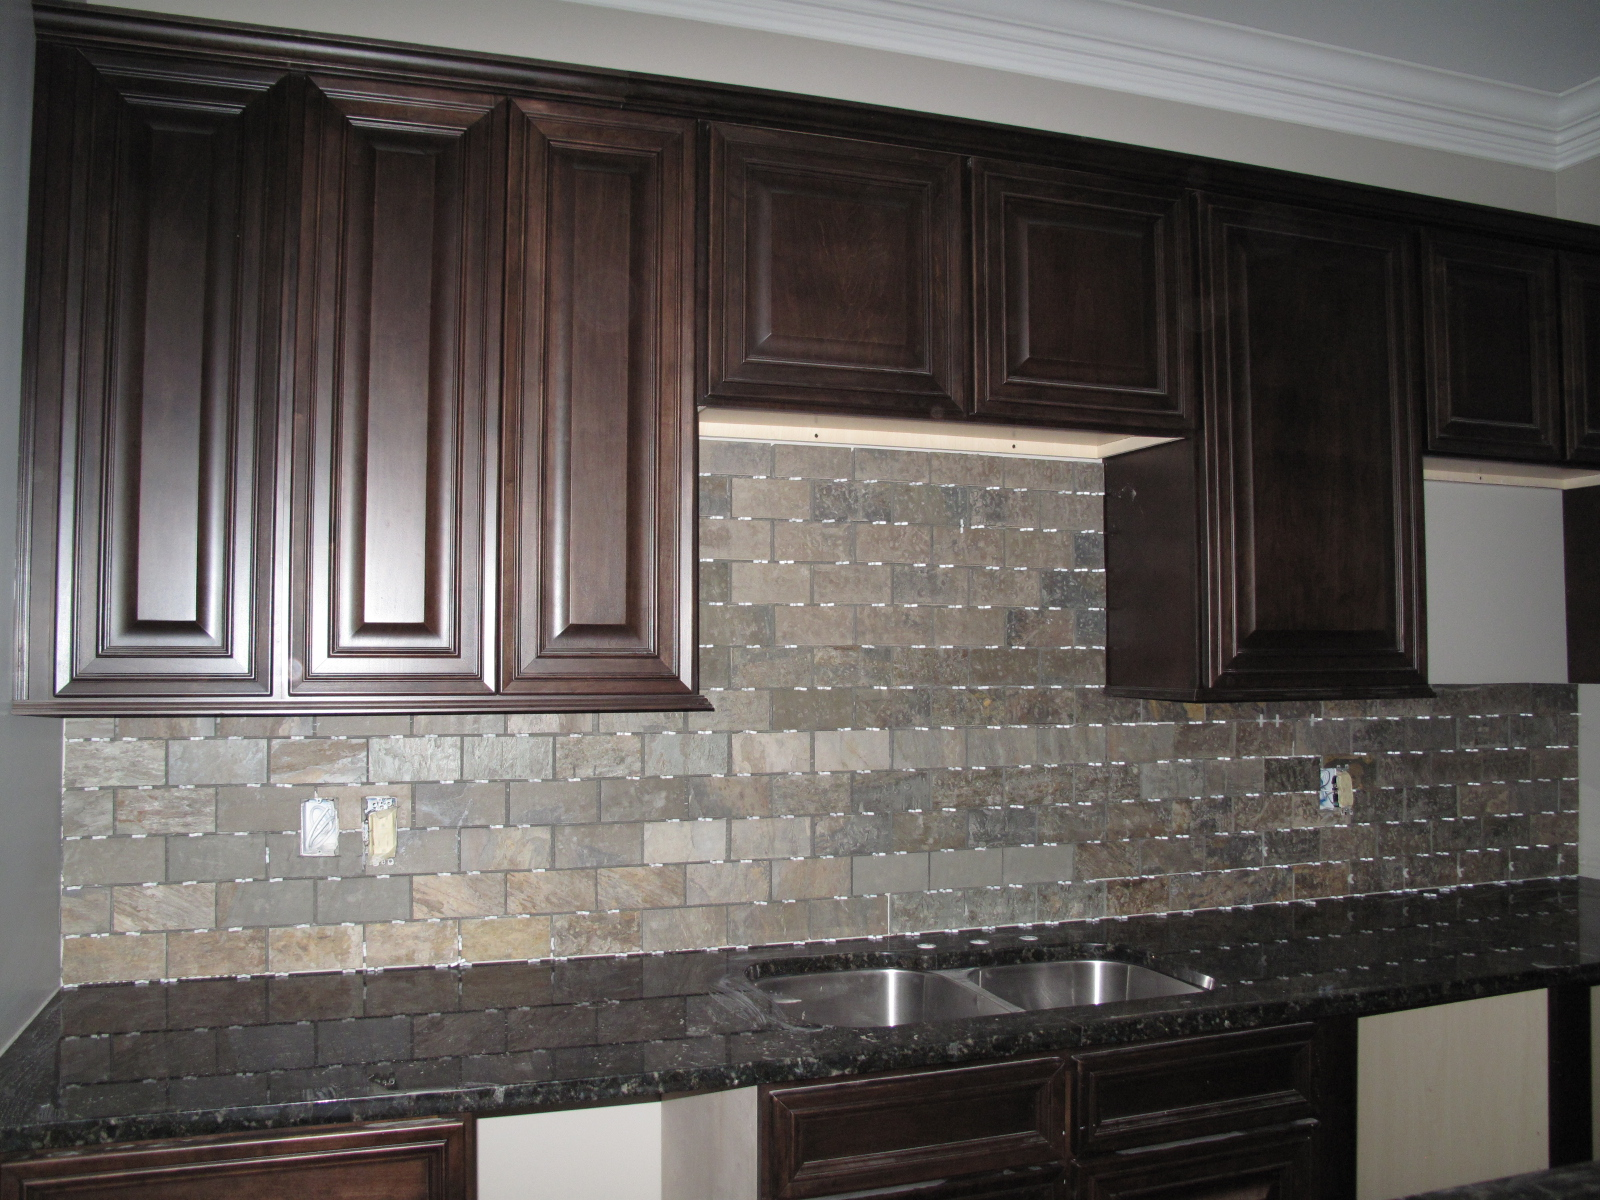 Images Of Subway Tile Kitchen Backsplash With White Countertops